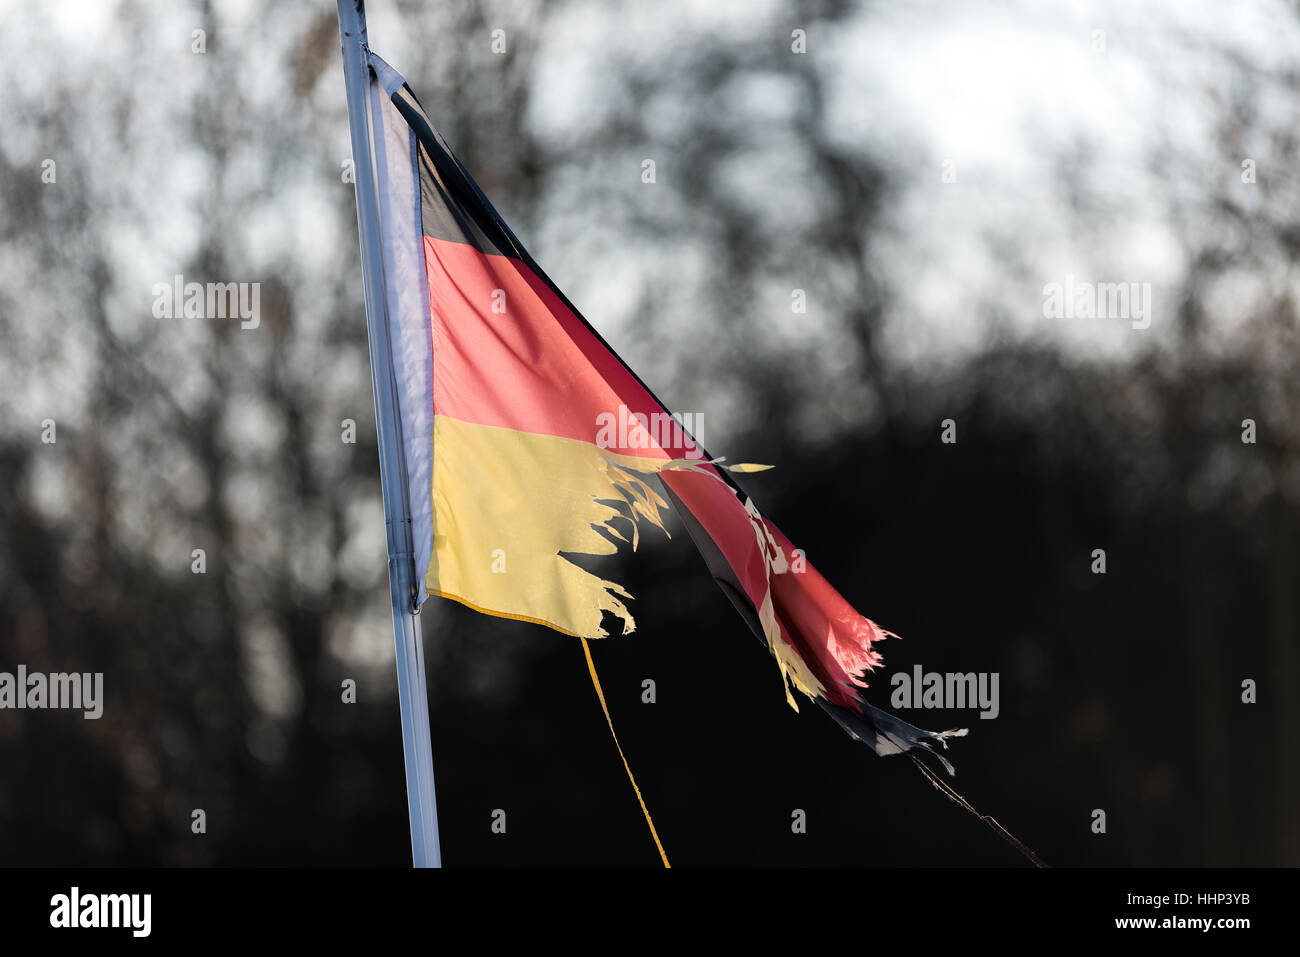 Flag Germany, flag of Germany, torn apart, torn, broken. Symbol, symbolic, power, state, crisis. Power crisis, black - Stock Image